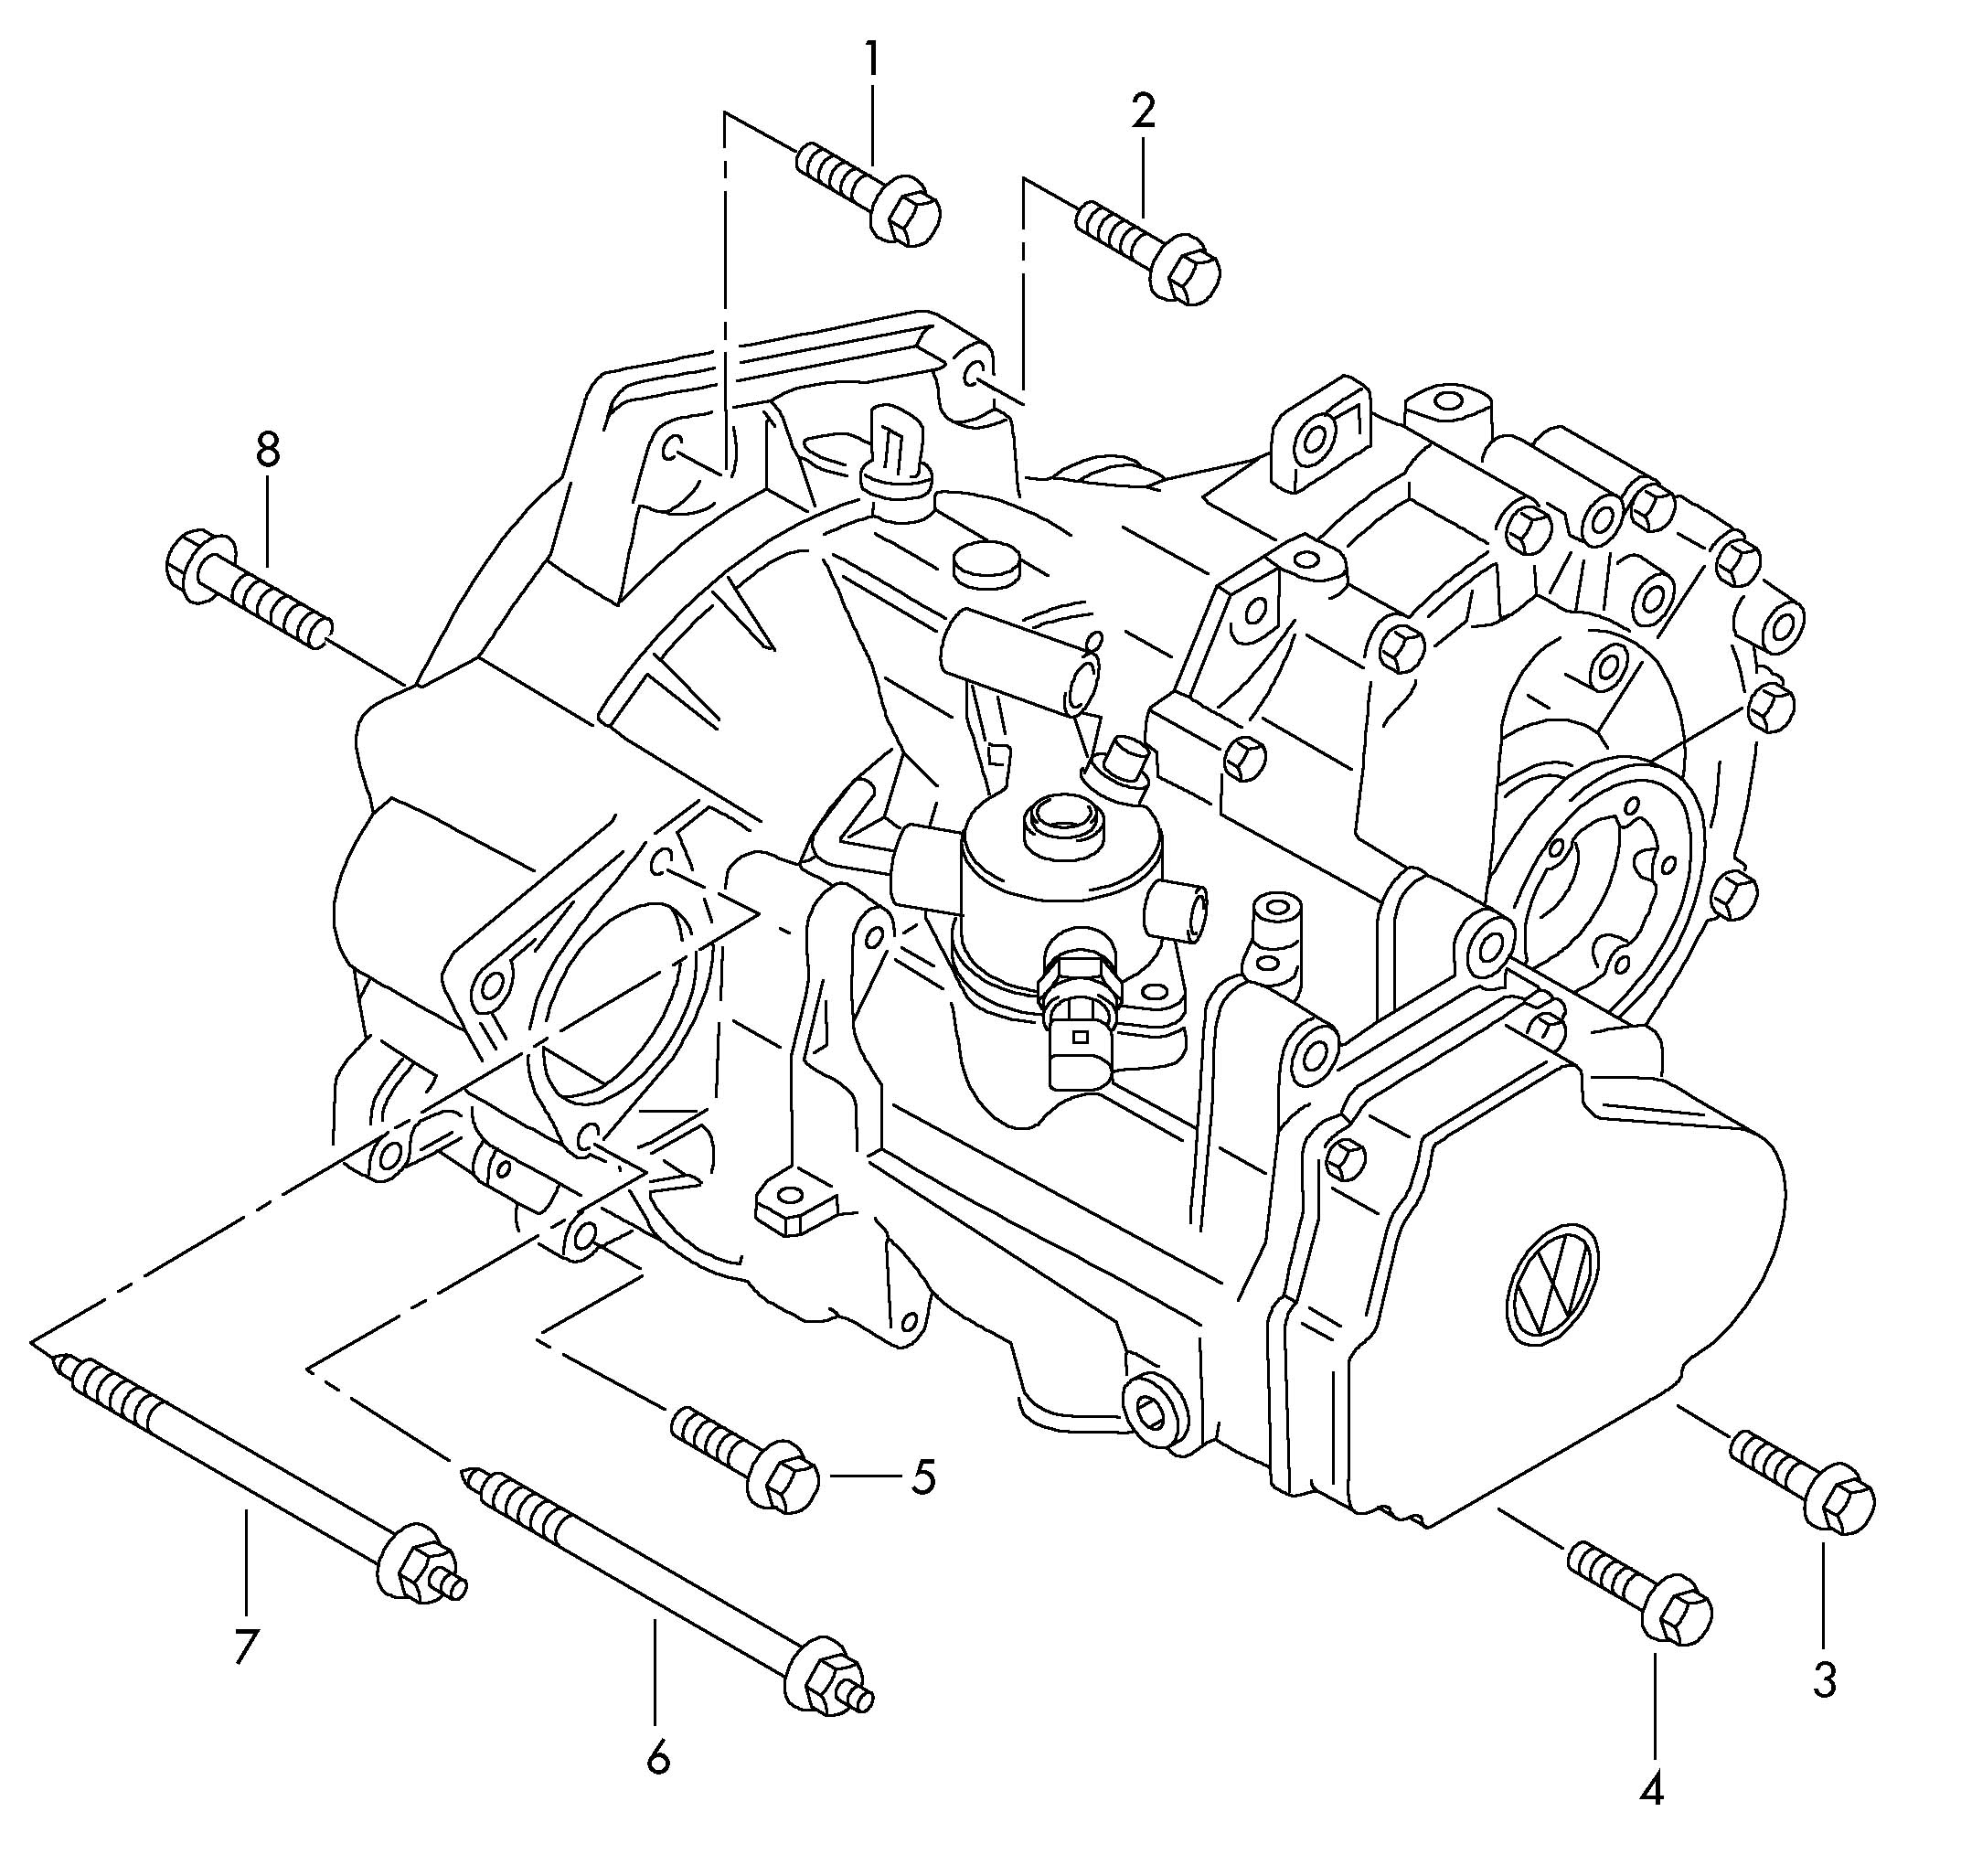 Volkswagen Jetta Mounting Parts For Engine And Transmission For 5 Speed Manual Transmiss  5